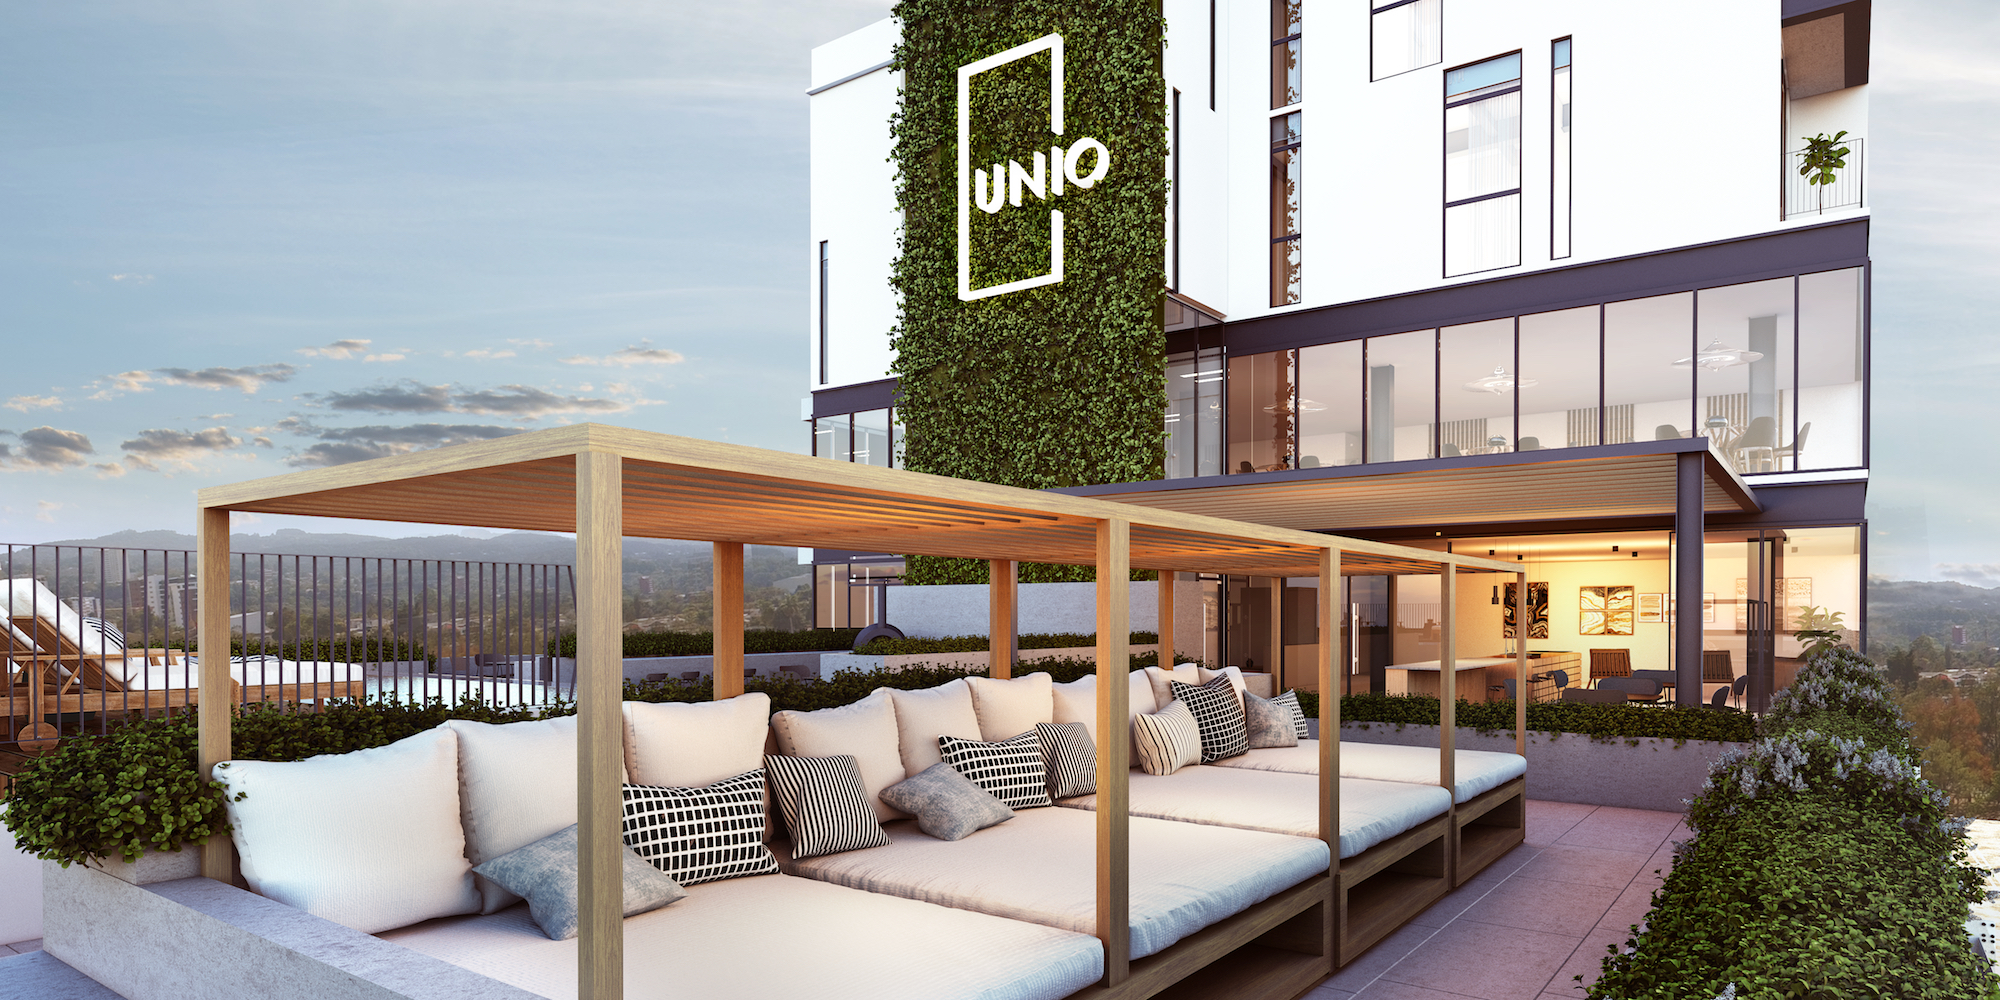 RoofTop BedDay UNIO.jpg